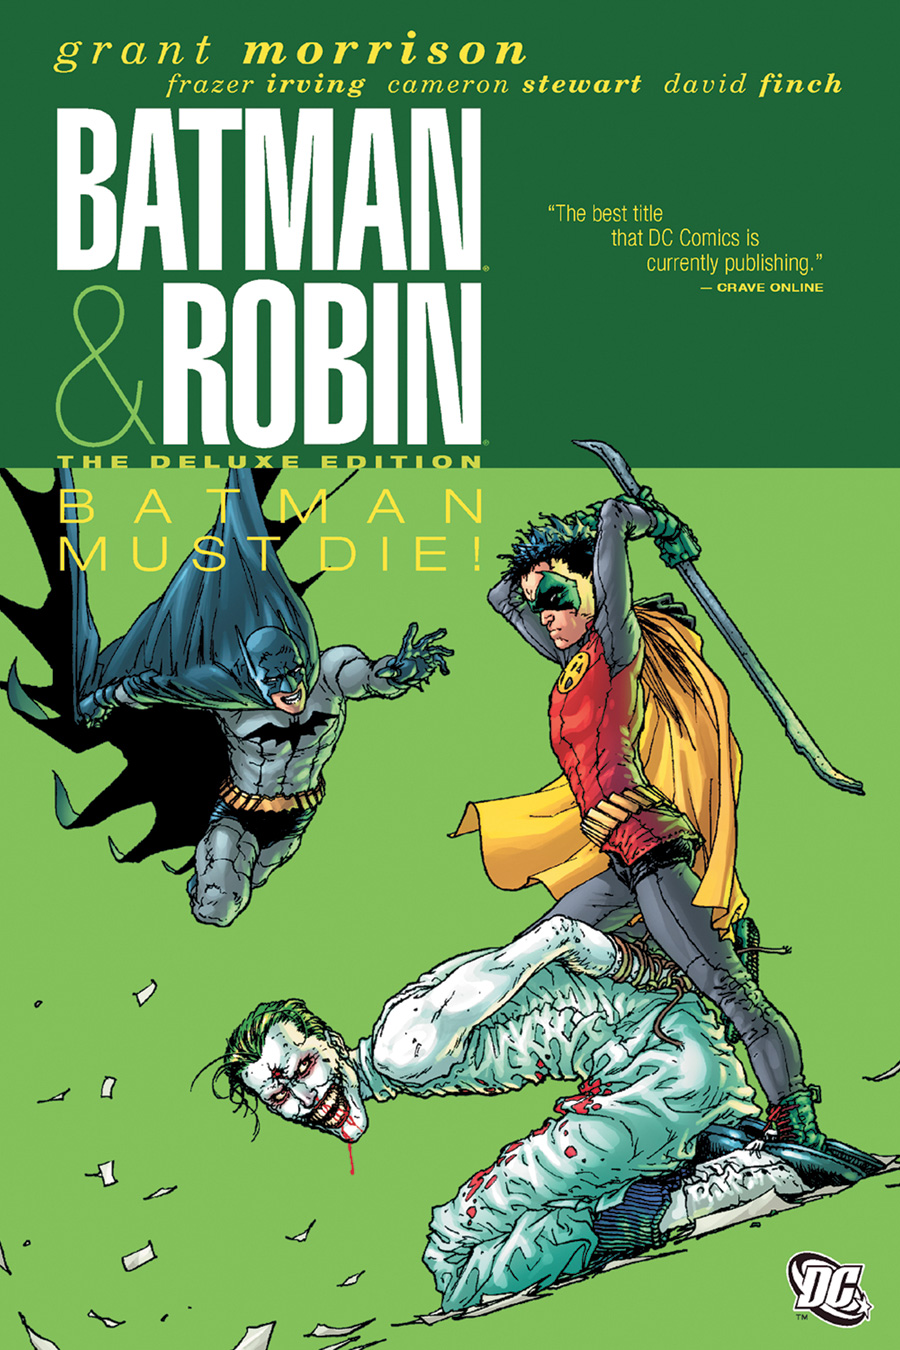 Batman and Robin comic